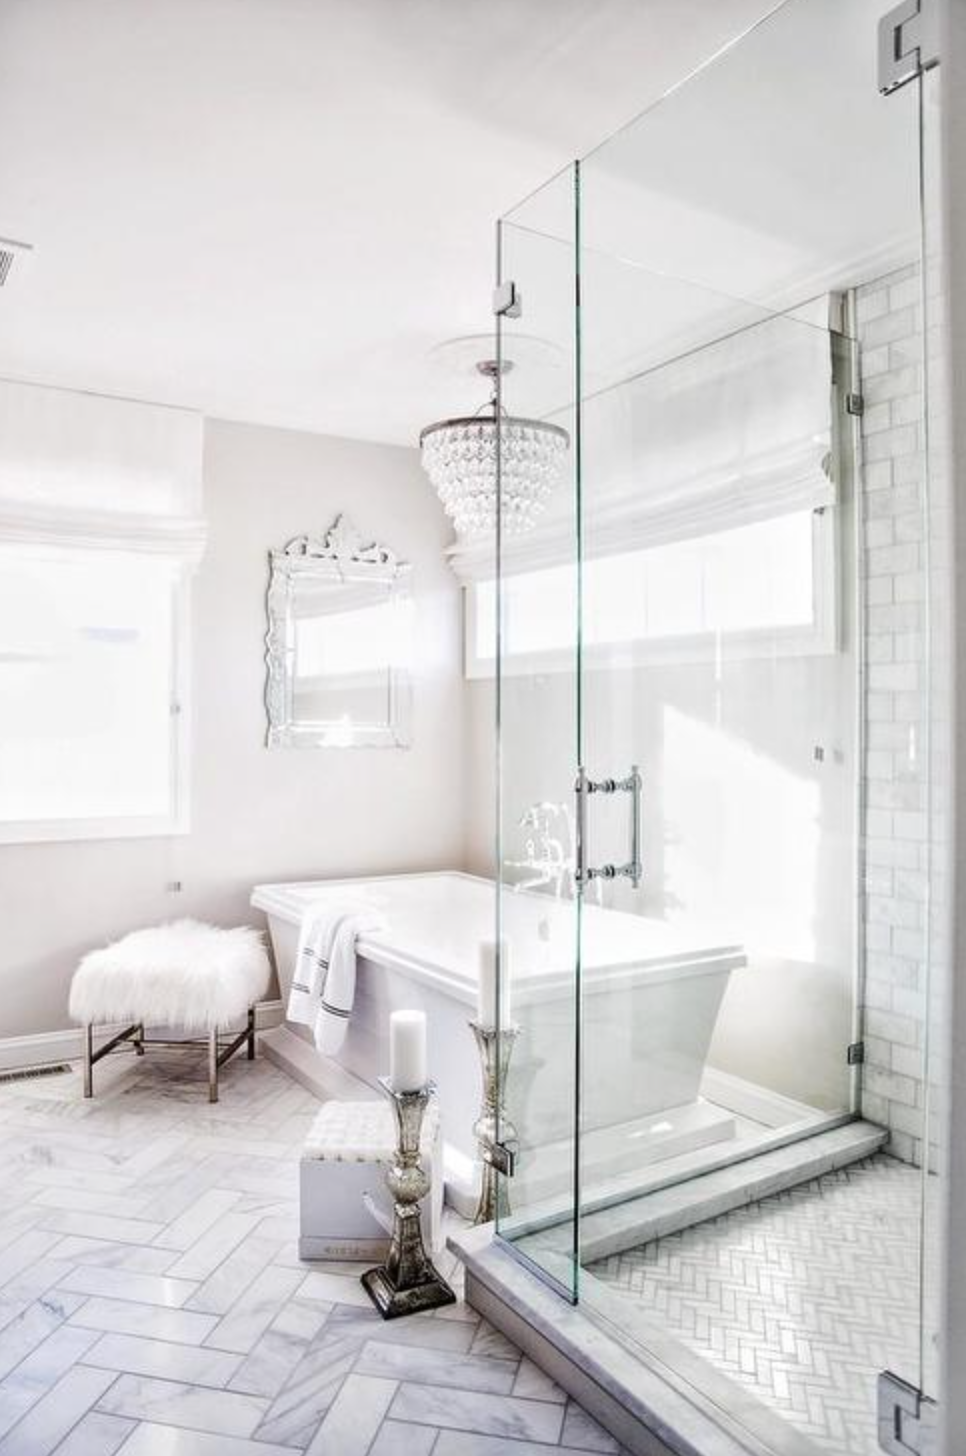 House Beautiful Bathrooms: The 15 Most Beautiful Bathrooms On Pinterest